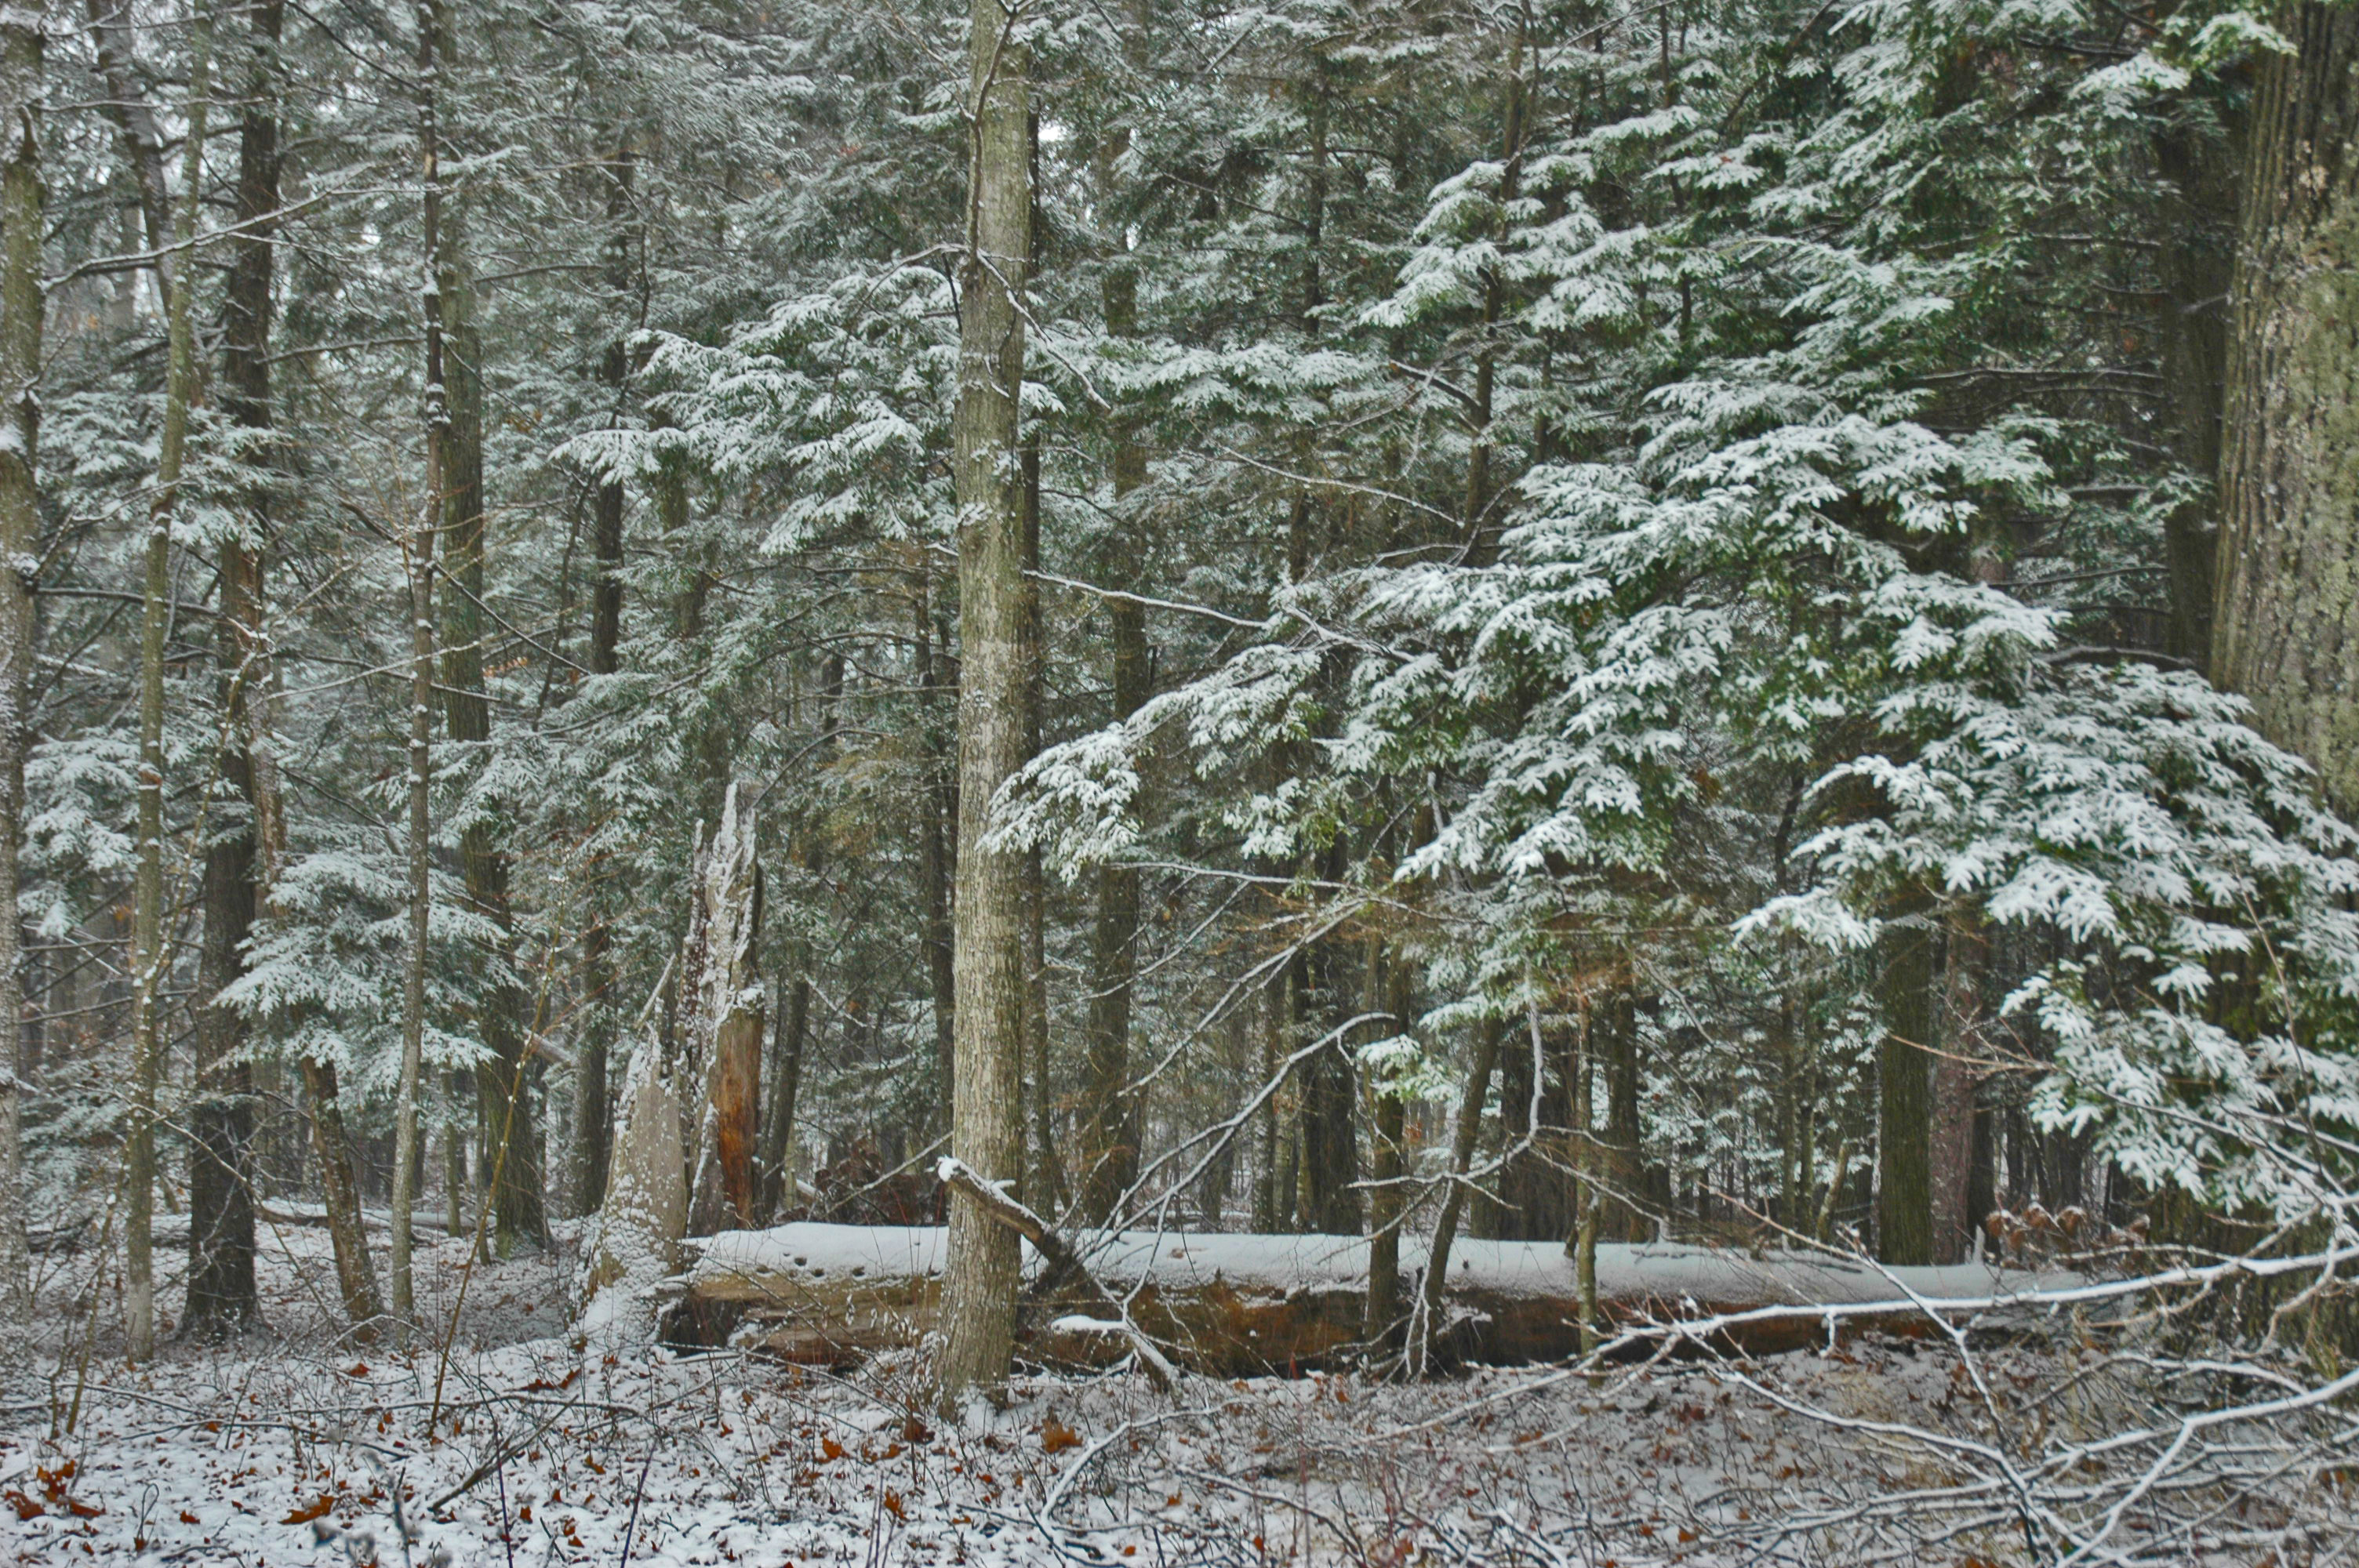 Snow falling on hemlocks at Old Mission this weekend.